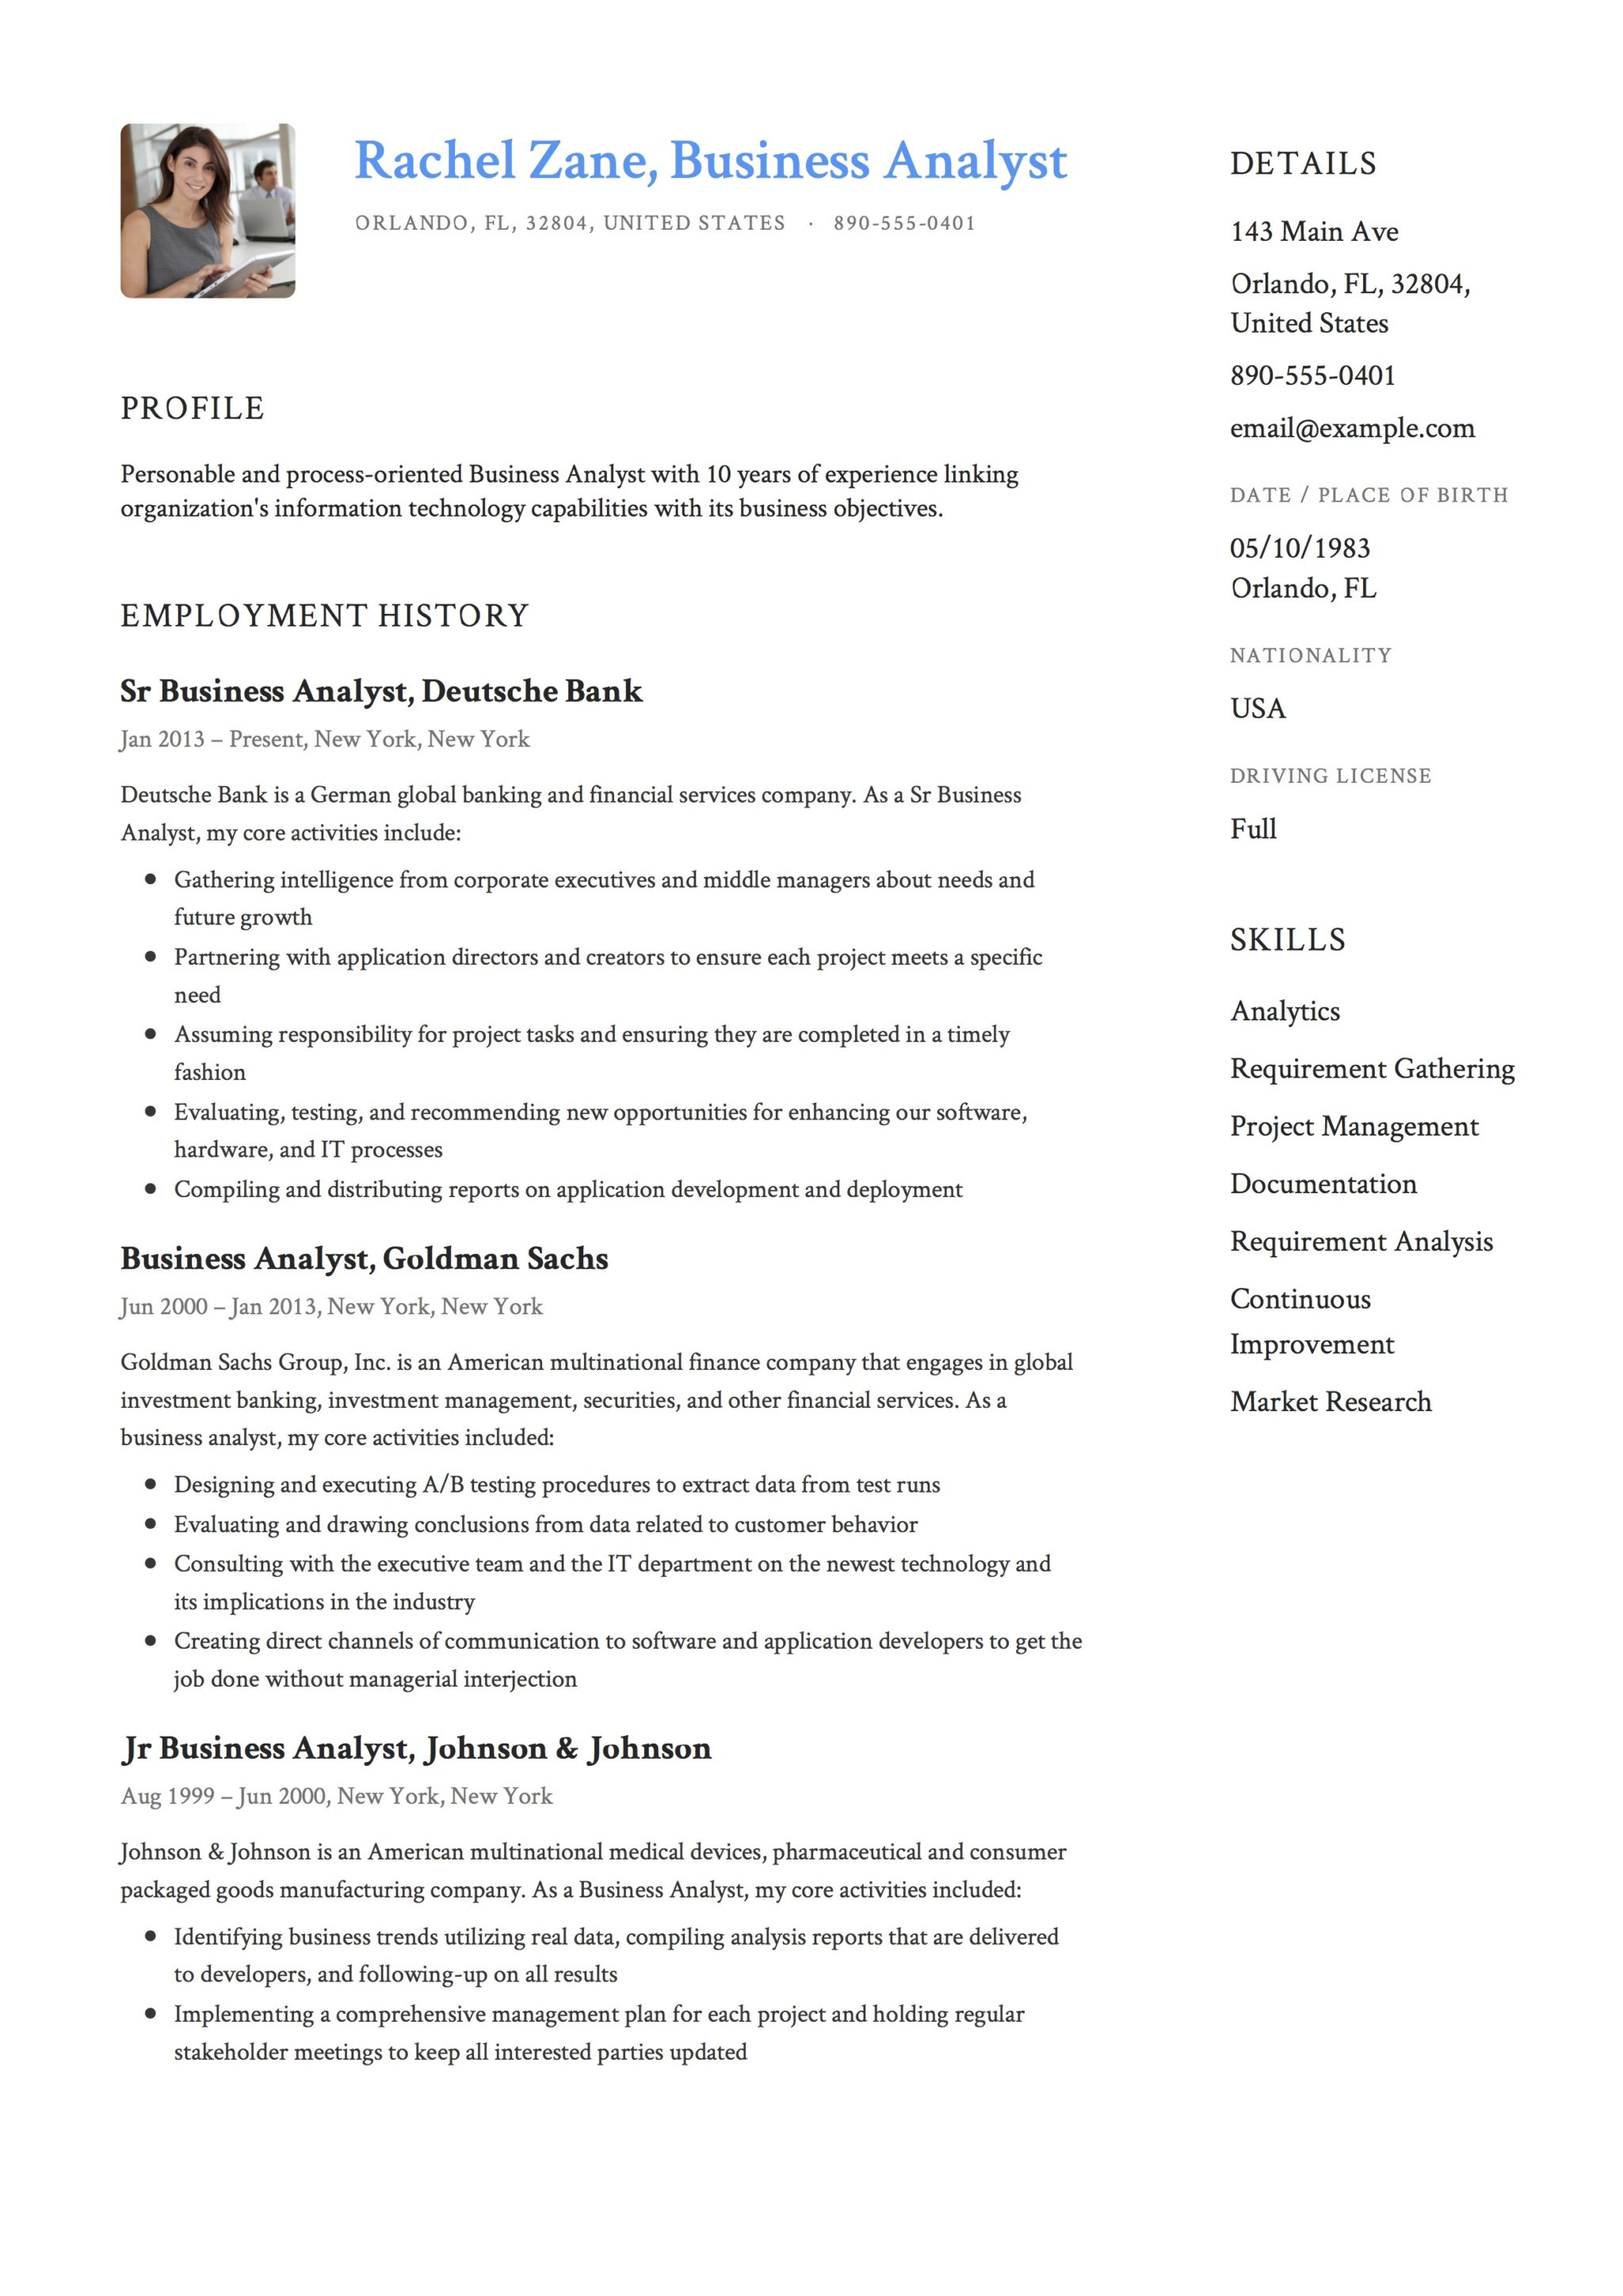 12 business analyst resume samples 2018 free downloads business analyst resume template accmission